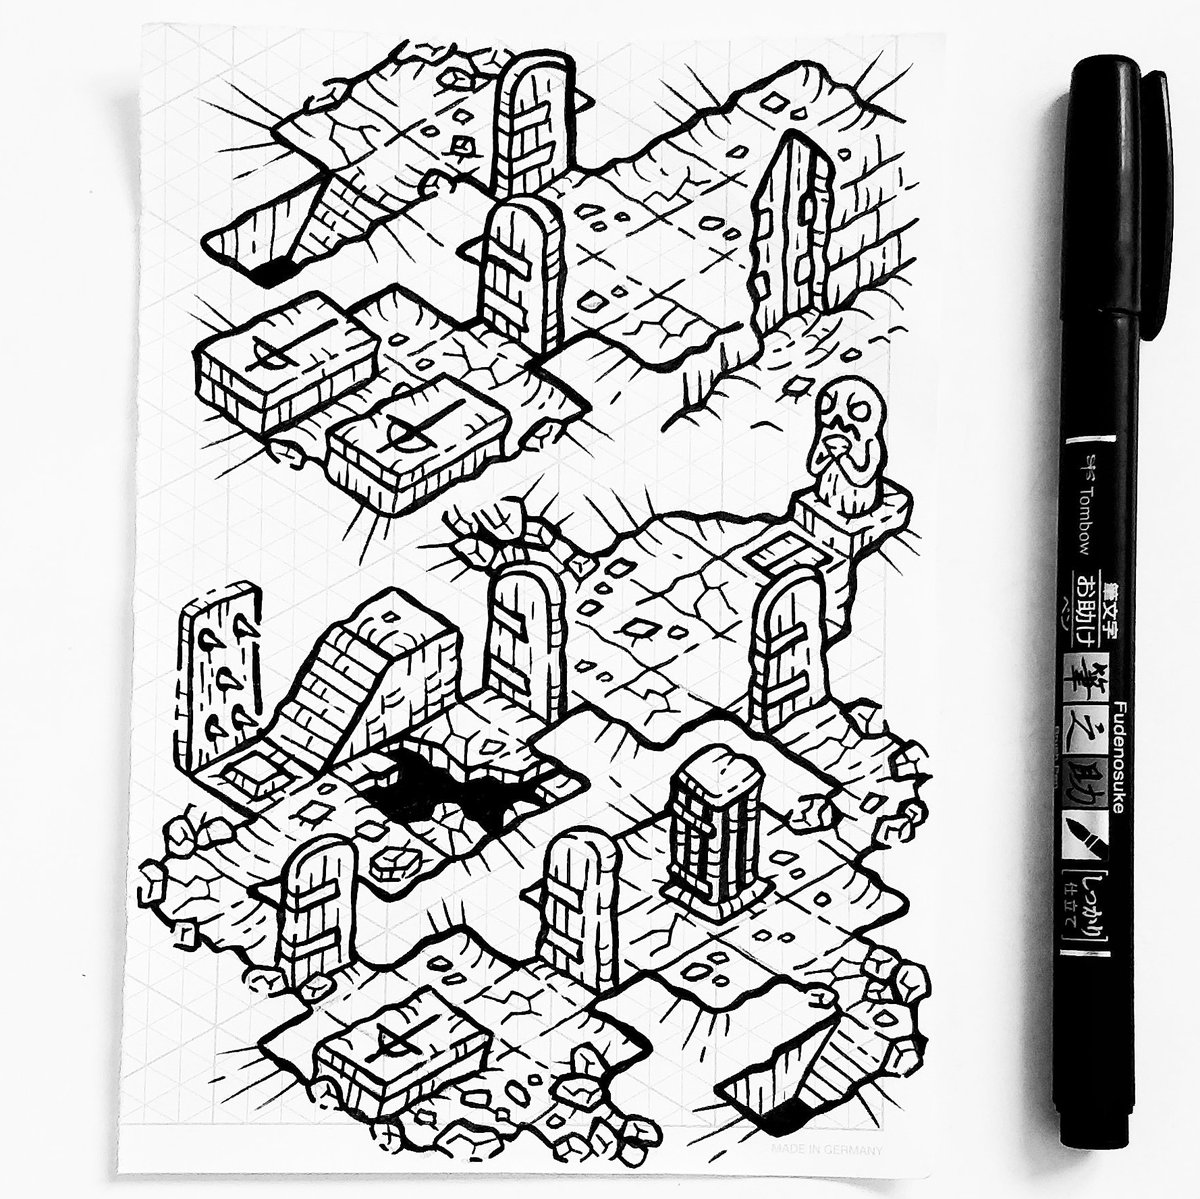 A small crypt, a little trappy! #dnd https://t.co/yYrtWBz6wQ